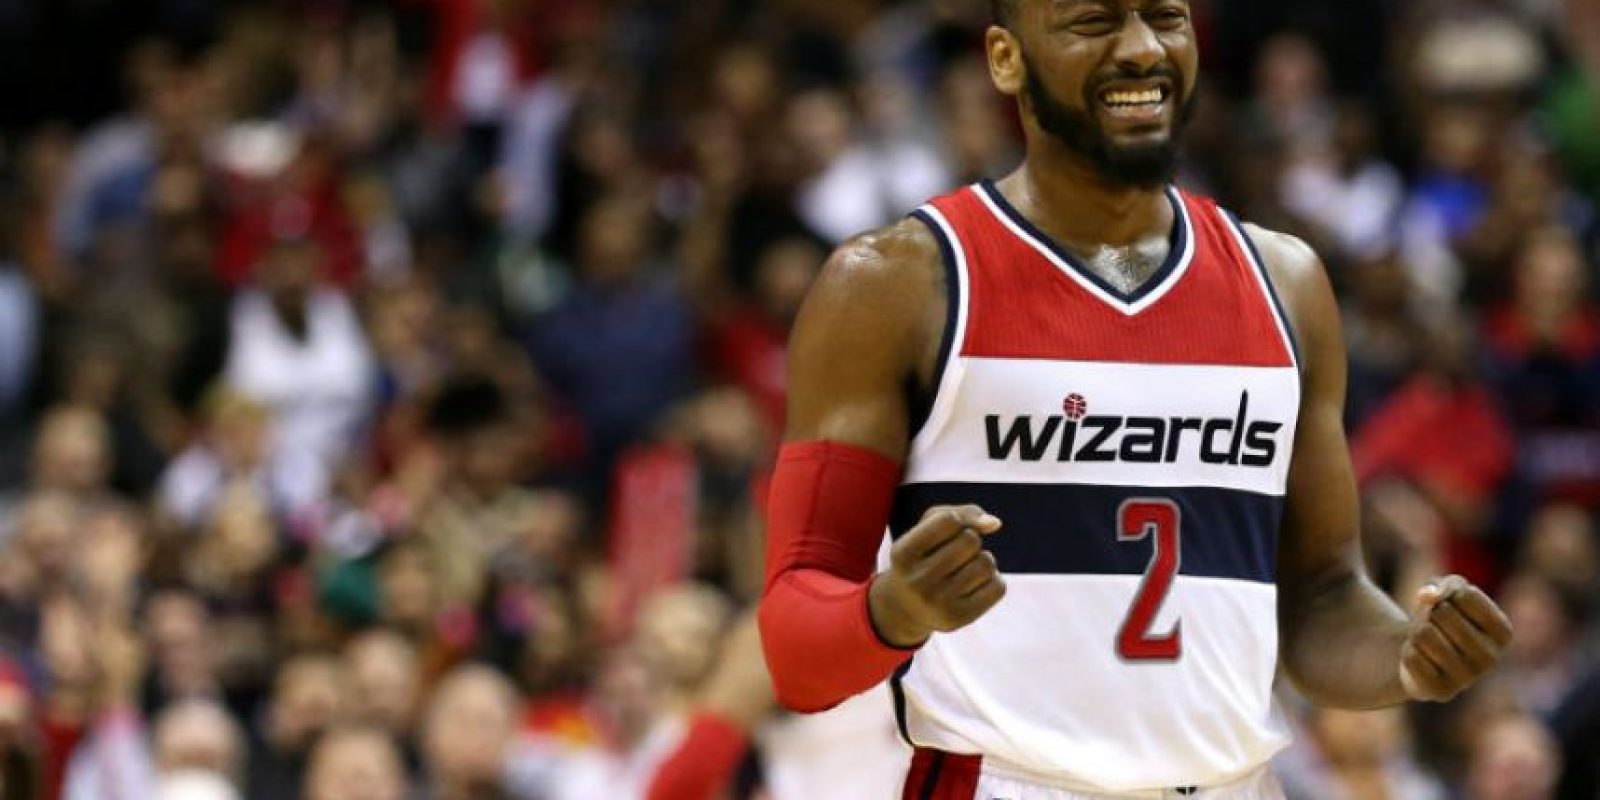 El guardia de los Wizards de Washington tuvo 886 mil 368 votos Foto: Getty